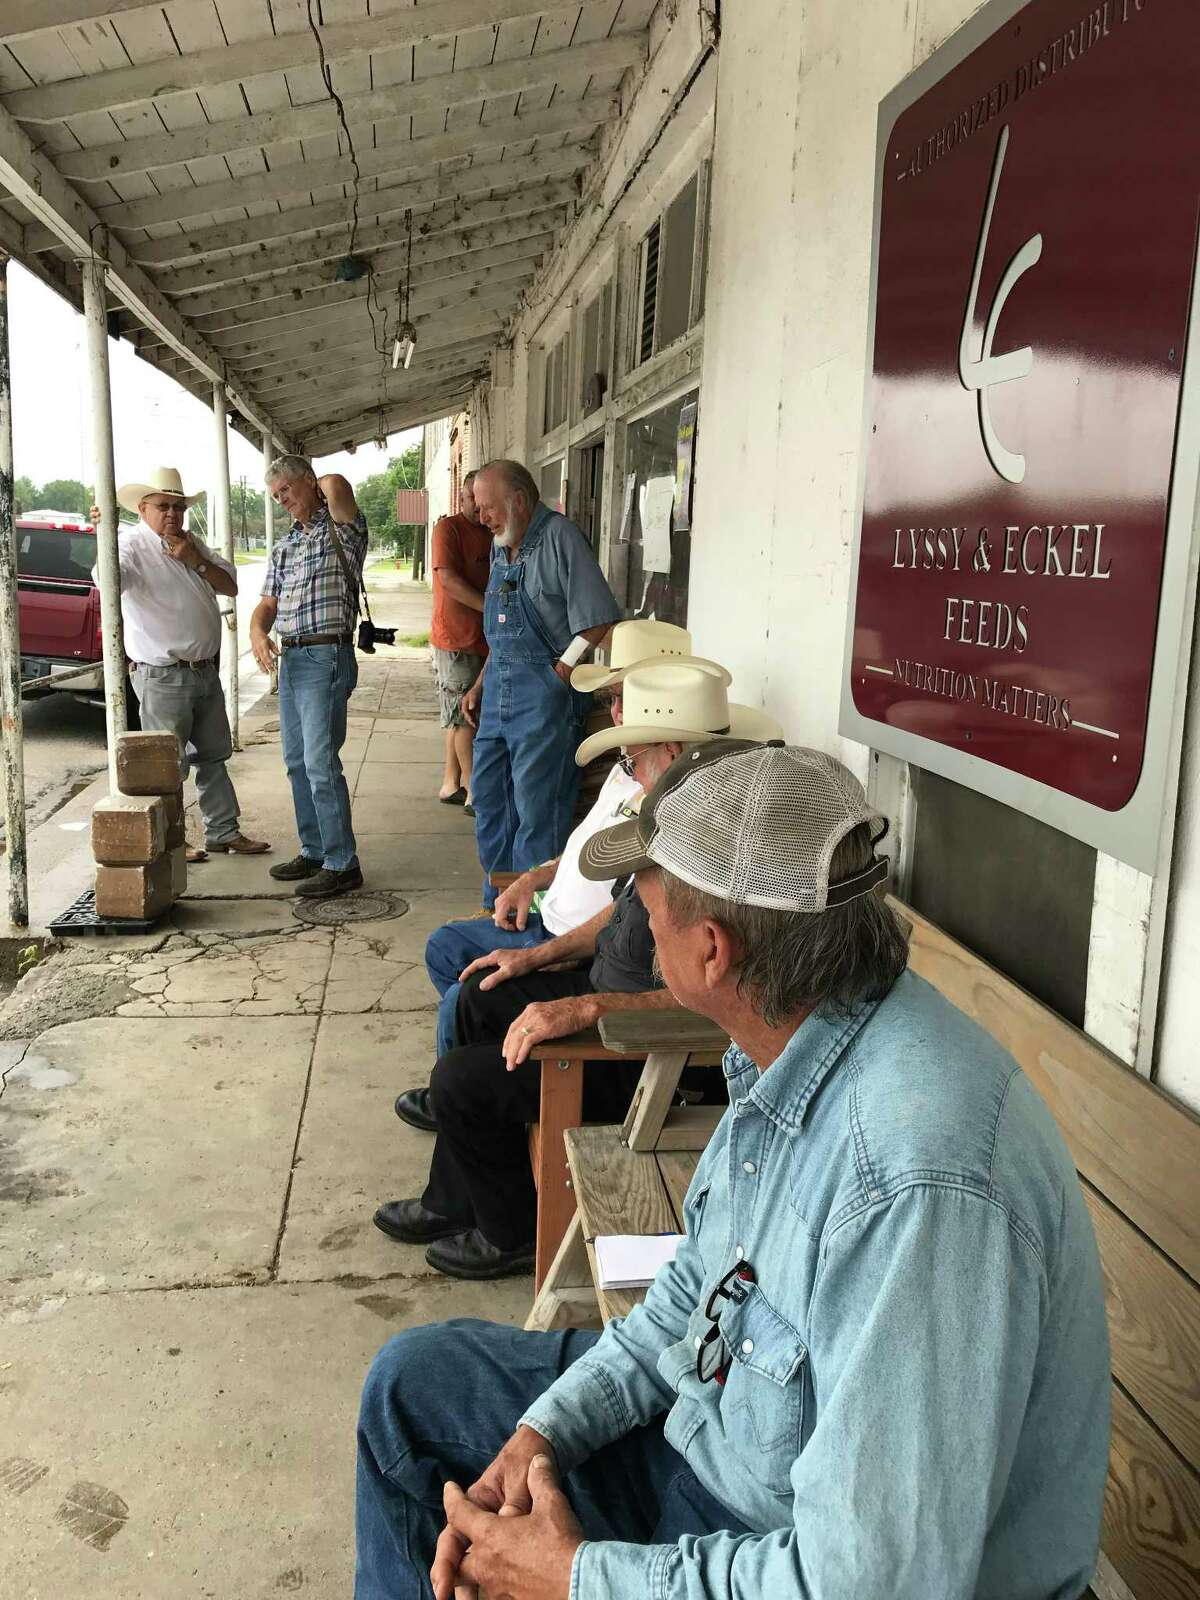 The loading dock at Stubbs Chemical and Feed in Trinity is a community gathering place.